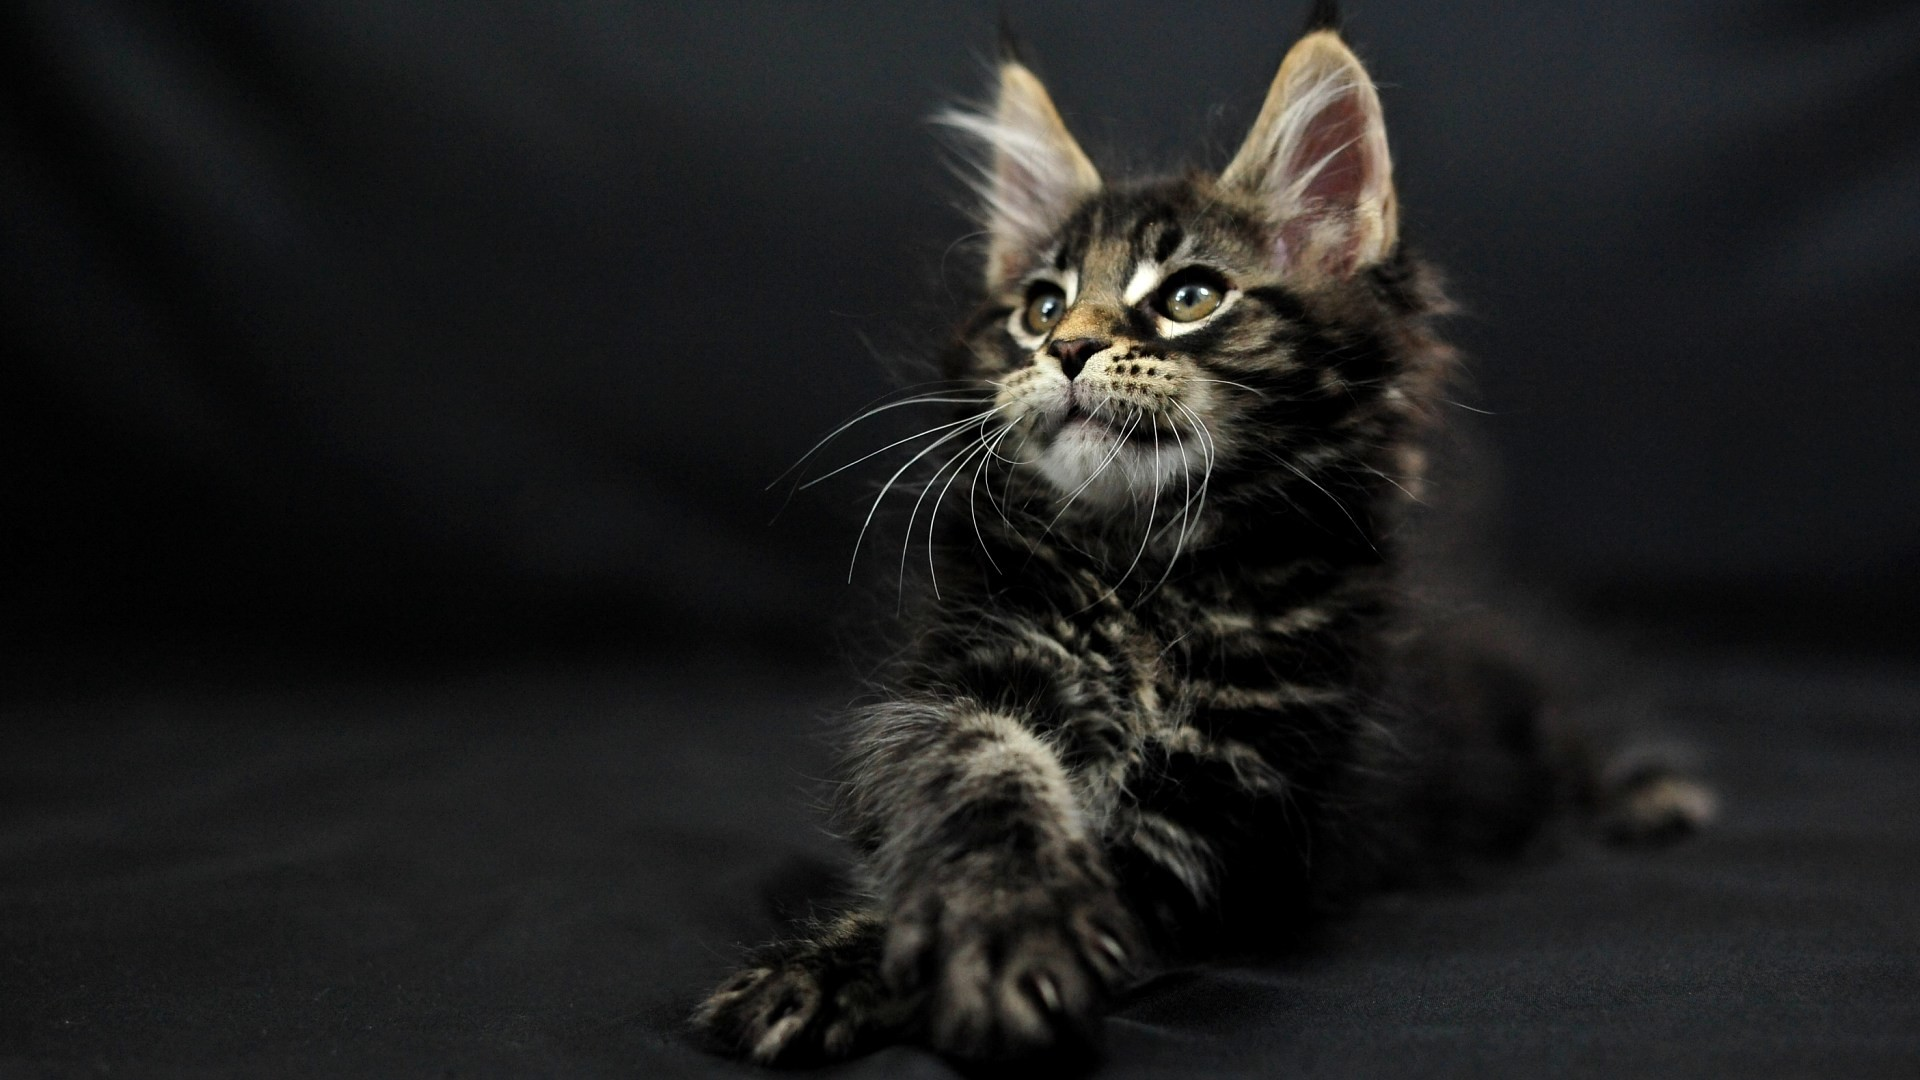 1920x1080 Computer Maine Coon Wallpapers, Desktop Backgrounds  px